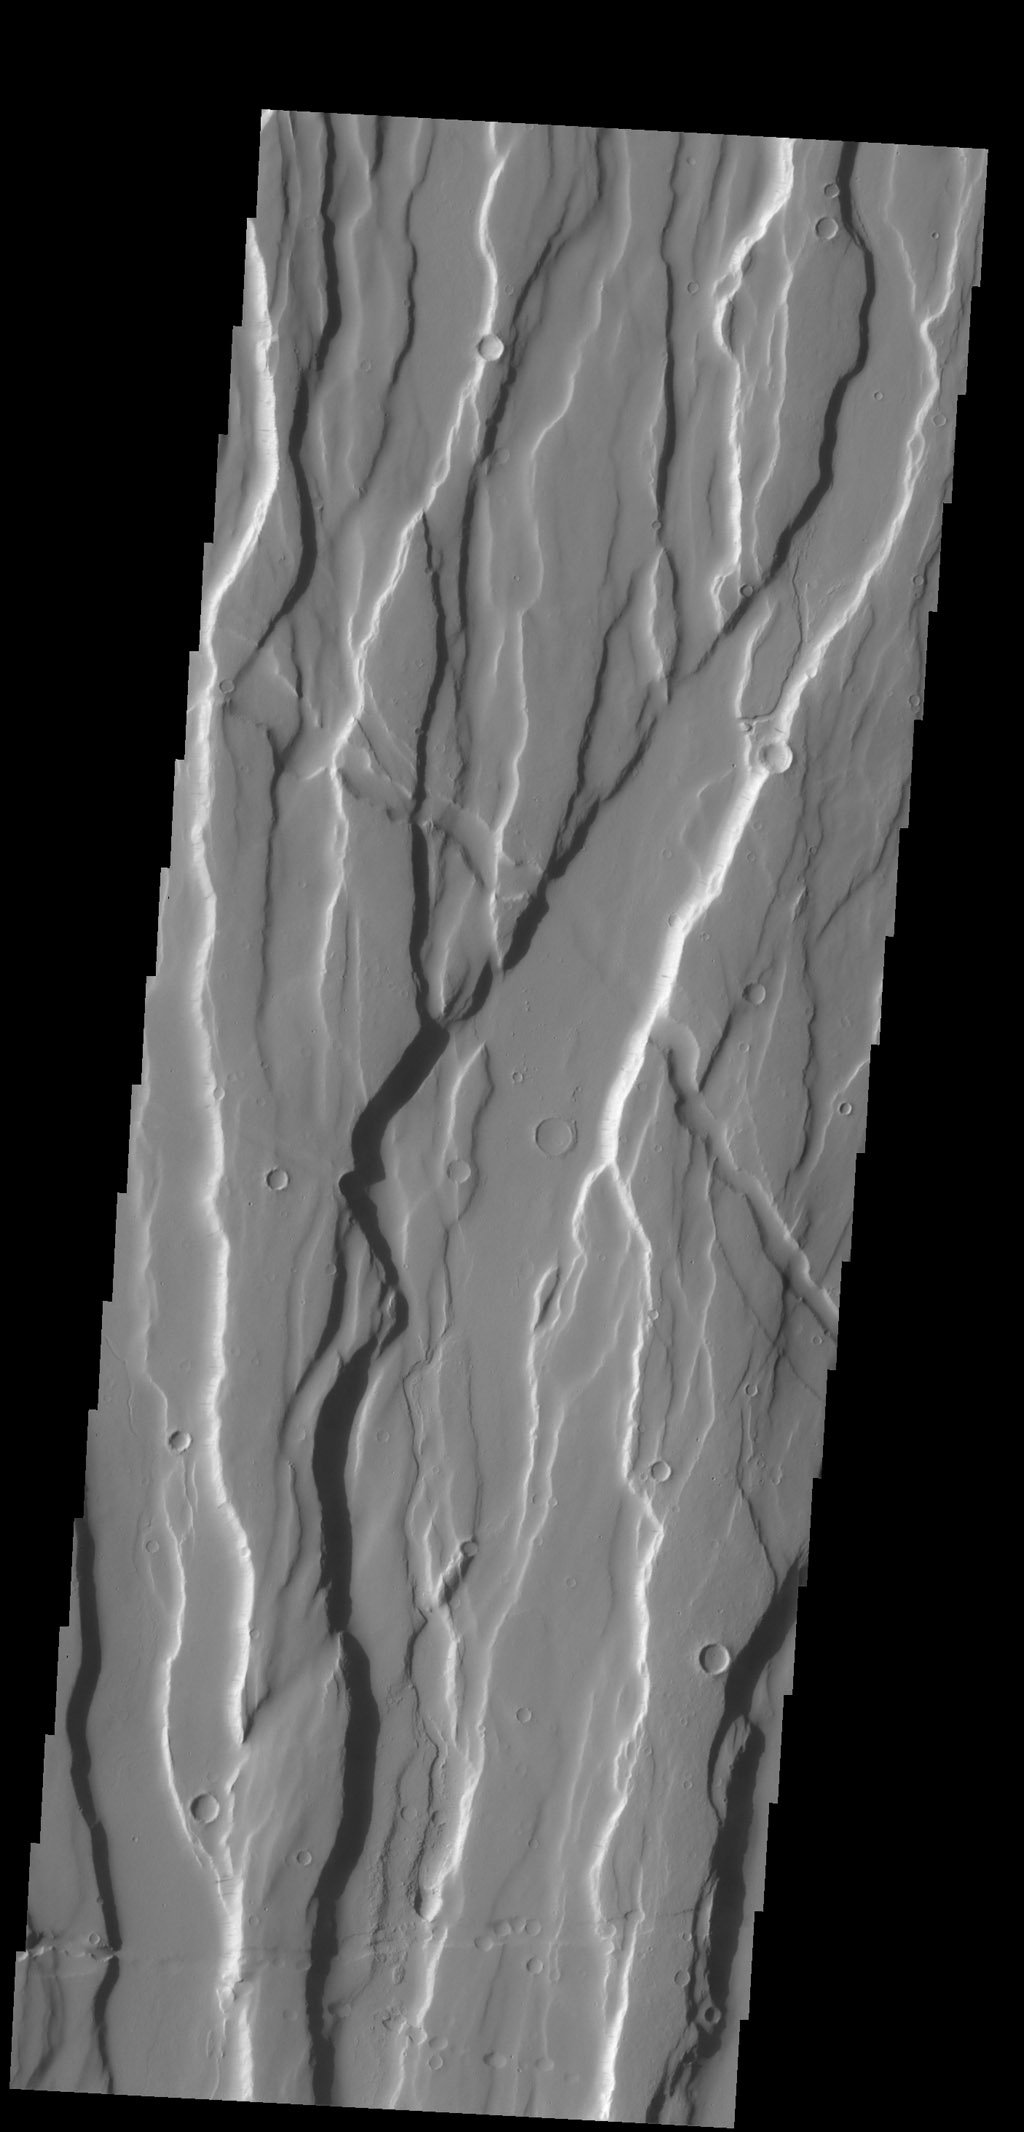 The complex fracture system in this image is part of Ceraunius Fossae, one of the fracture systems that surround Alba Mons as seen by NASA's 2001 Mars Odyssey spacecraft.